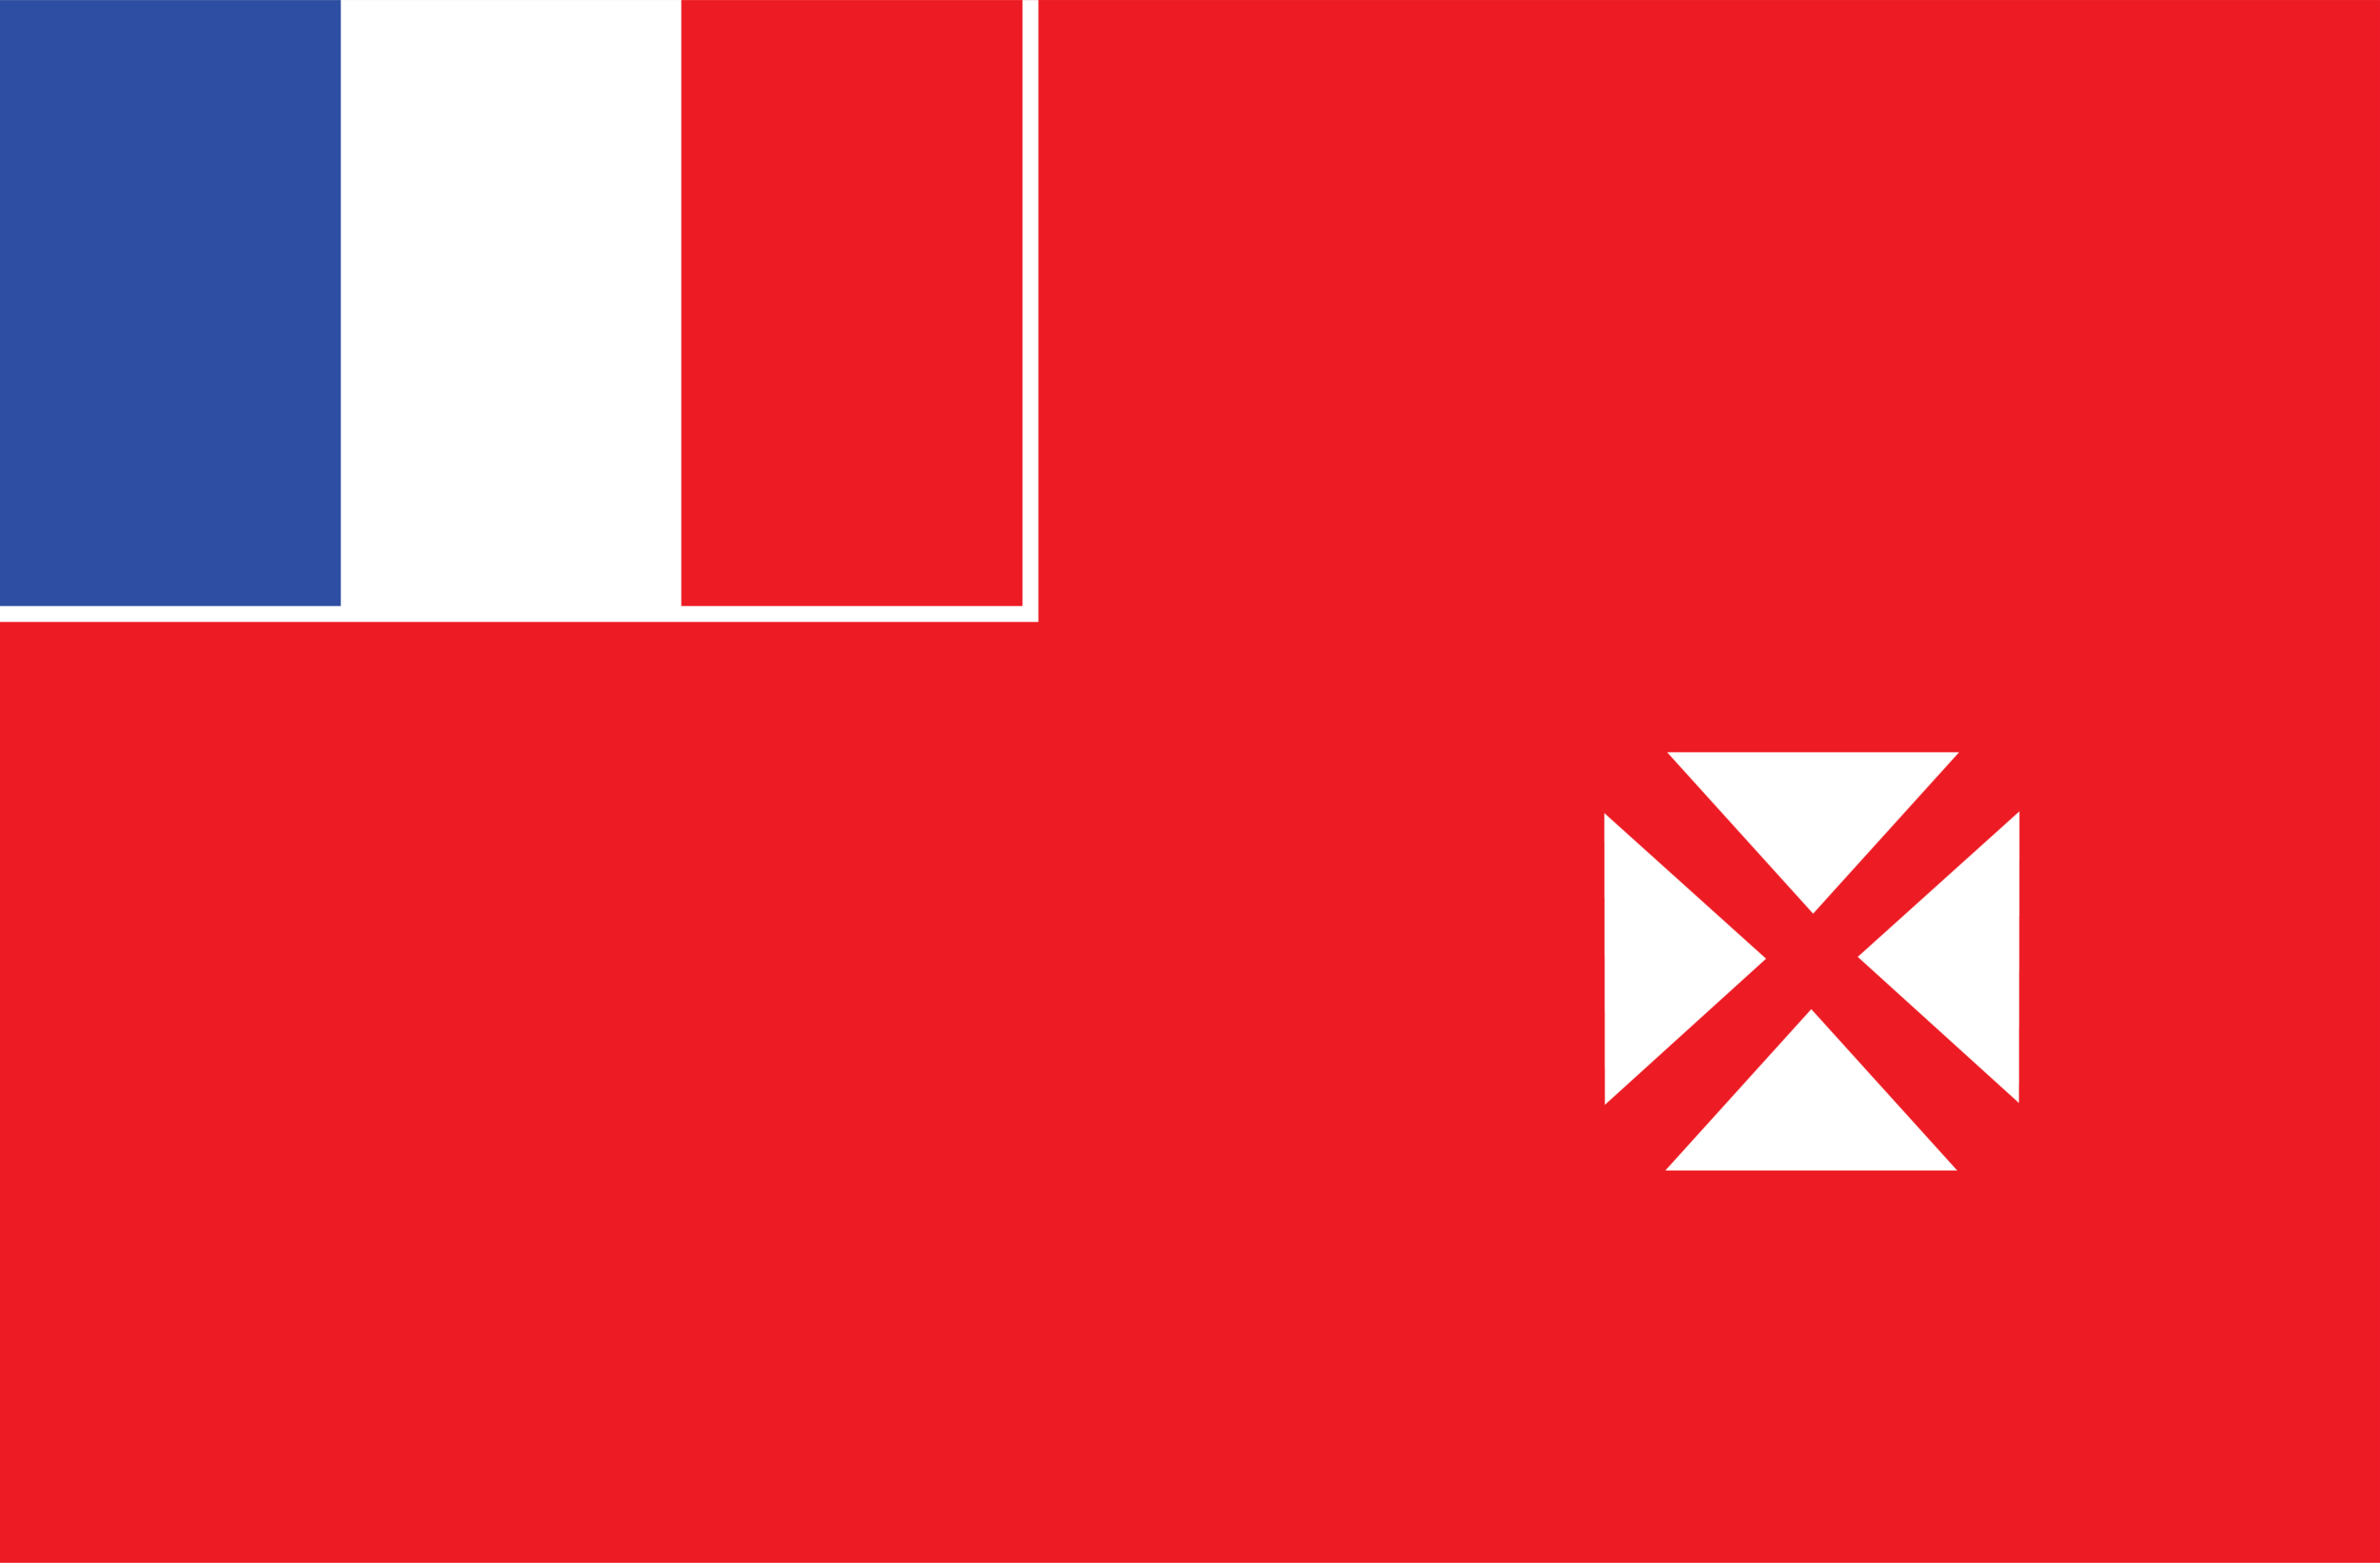 Uvéa Flag- The unofficial flag of the Territory of the Wallis and Futuna Islands